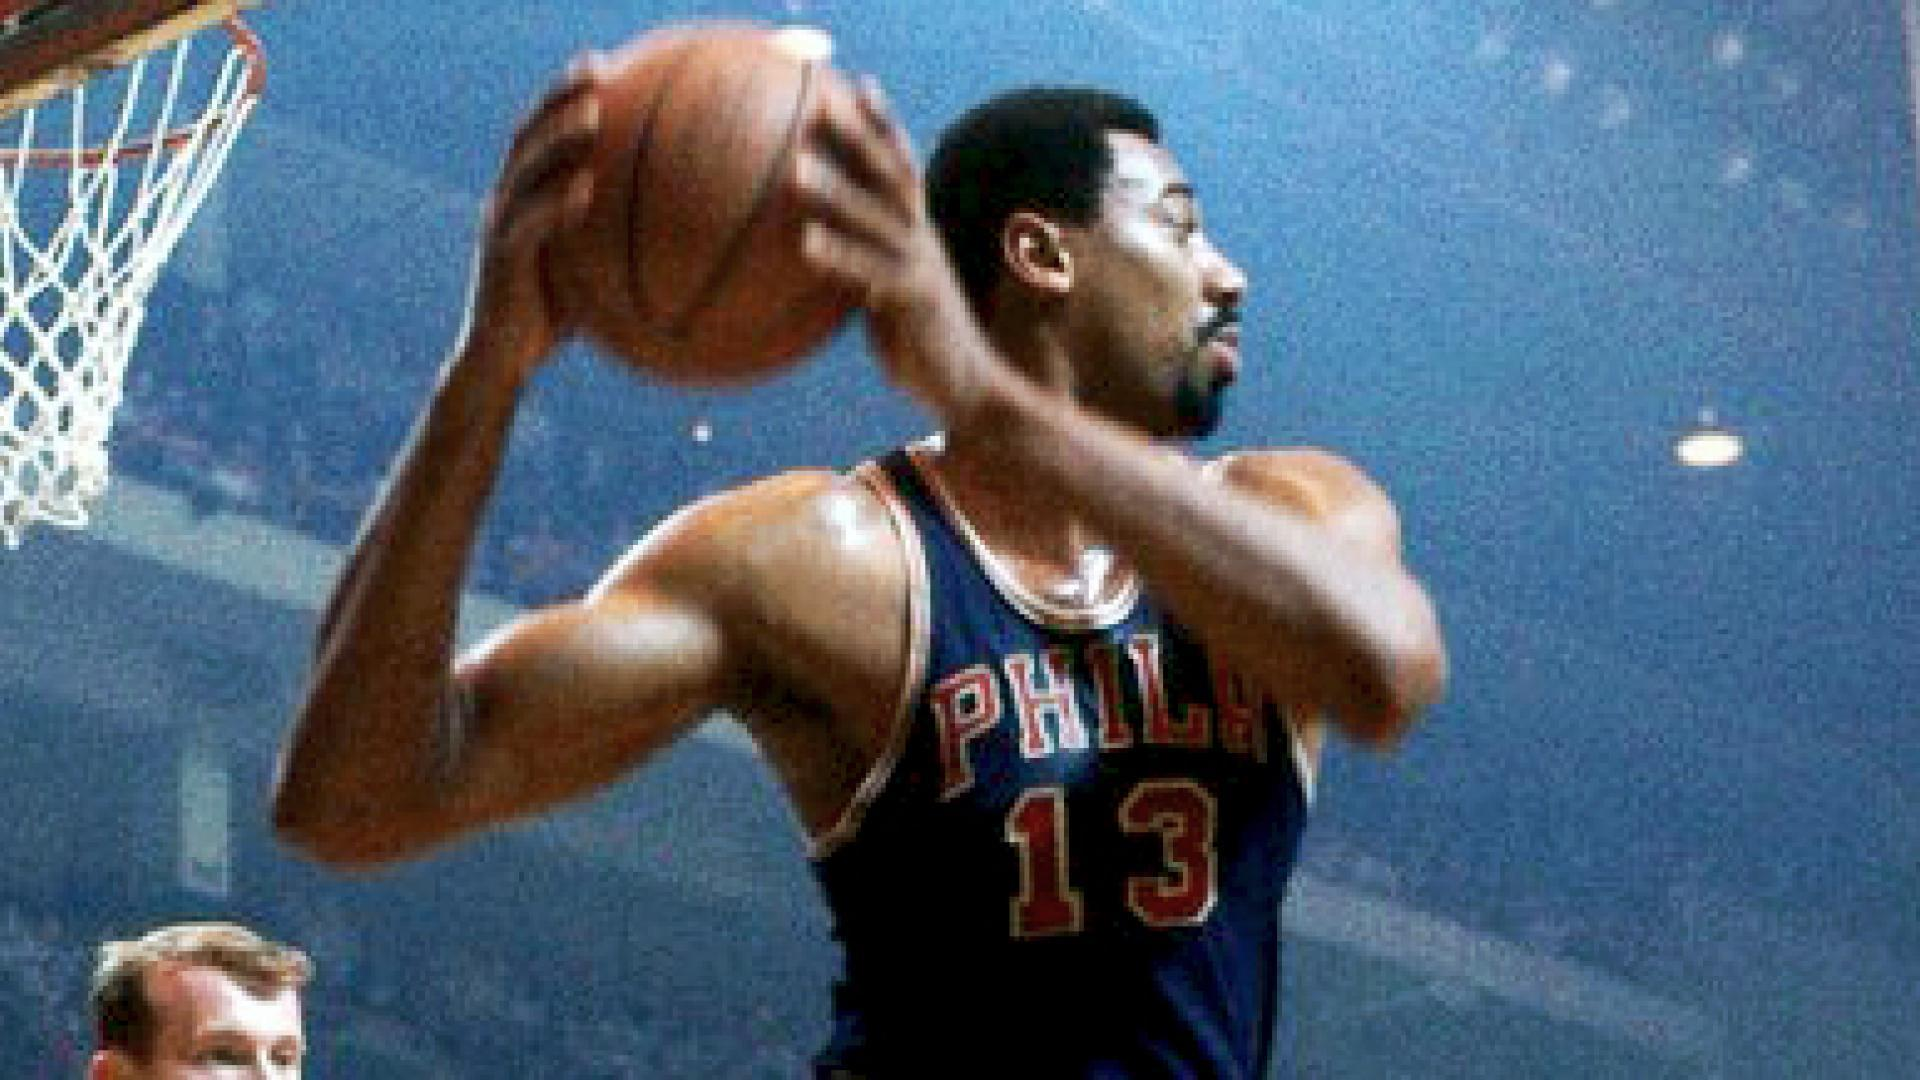 Legendary Moments in NBA History: Sixers retire Chamberlain's No. 13 jersey